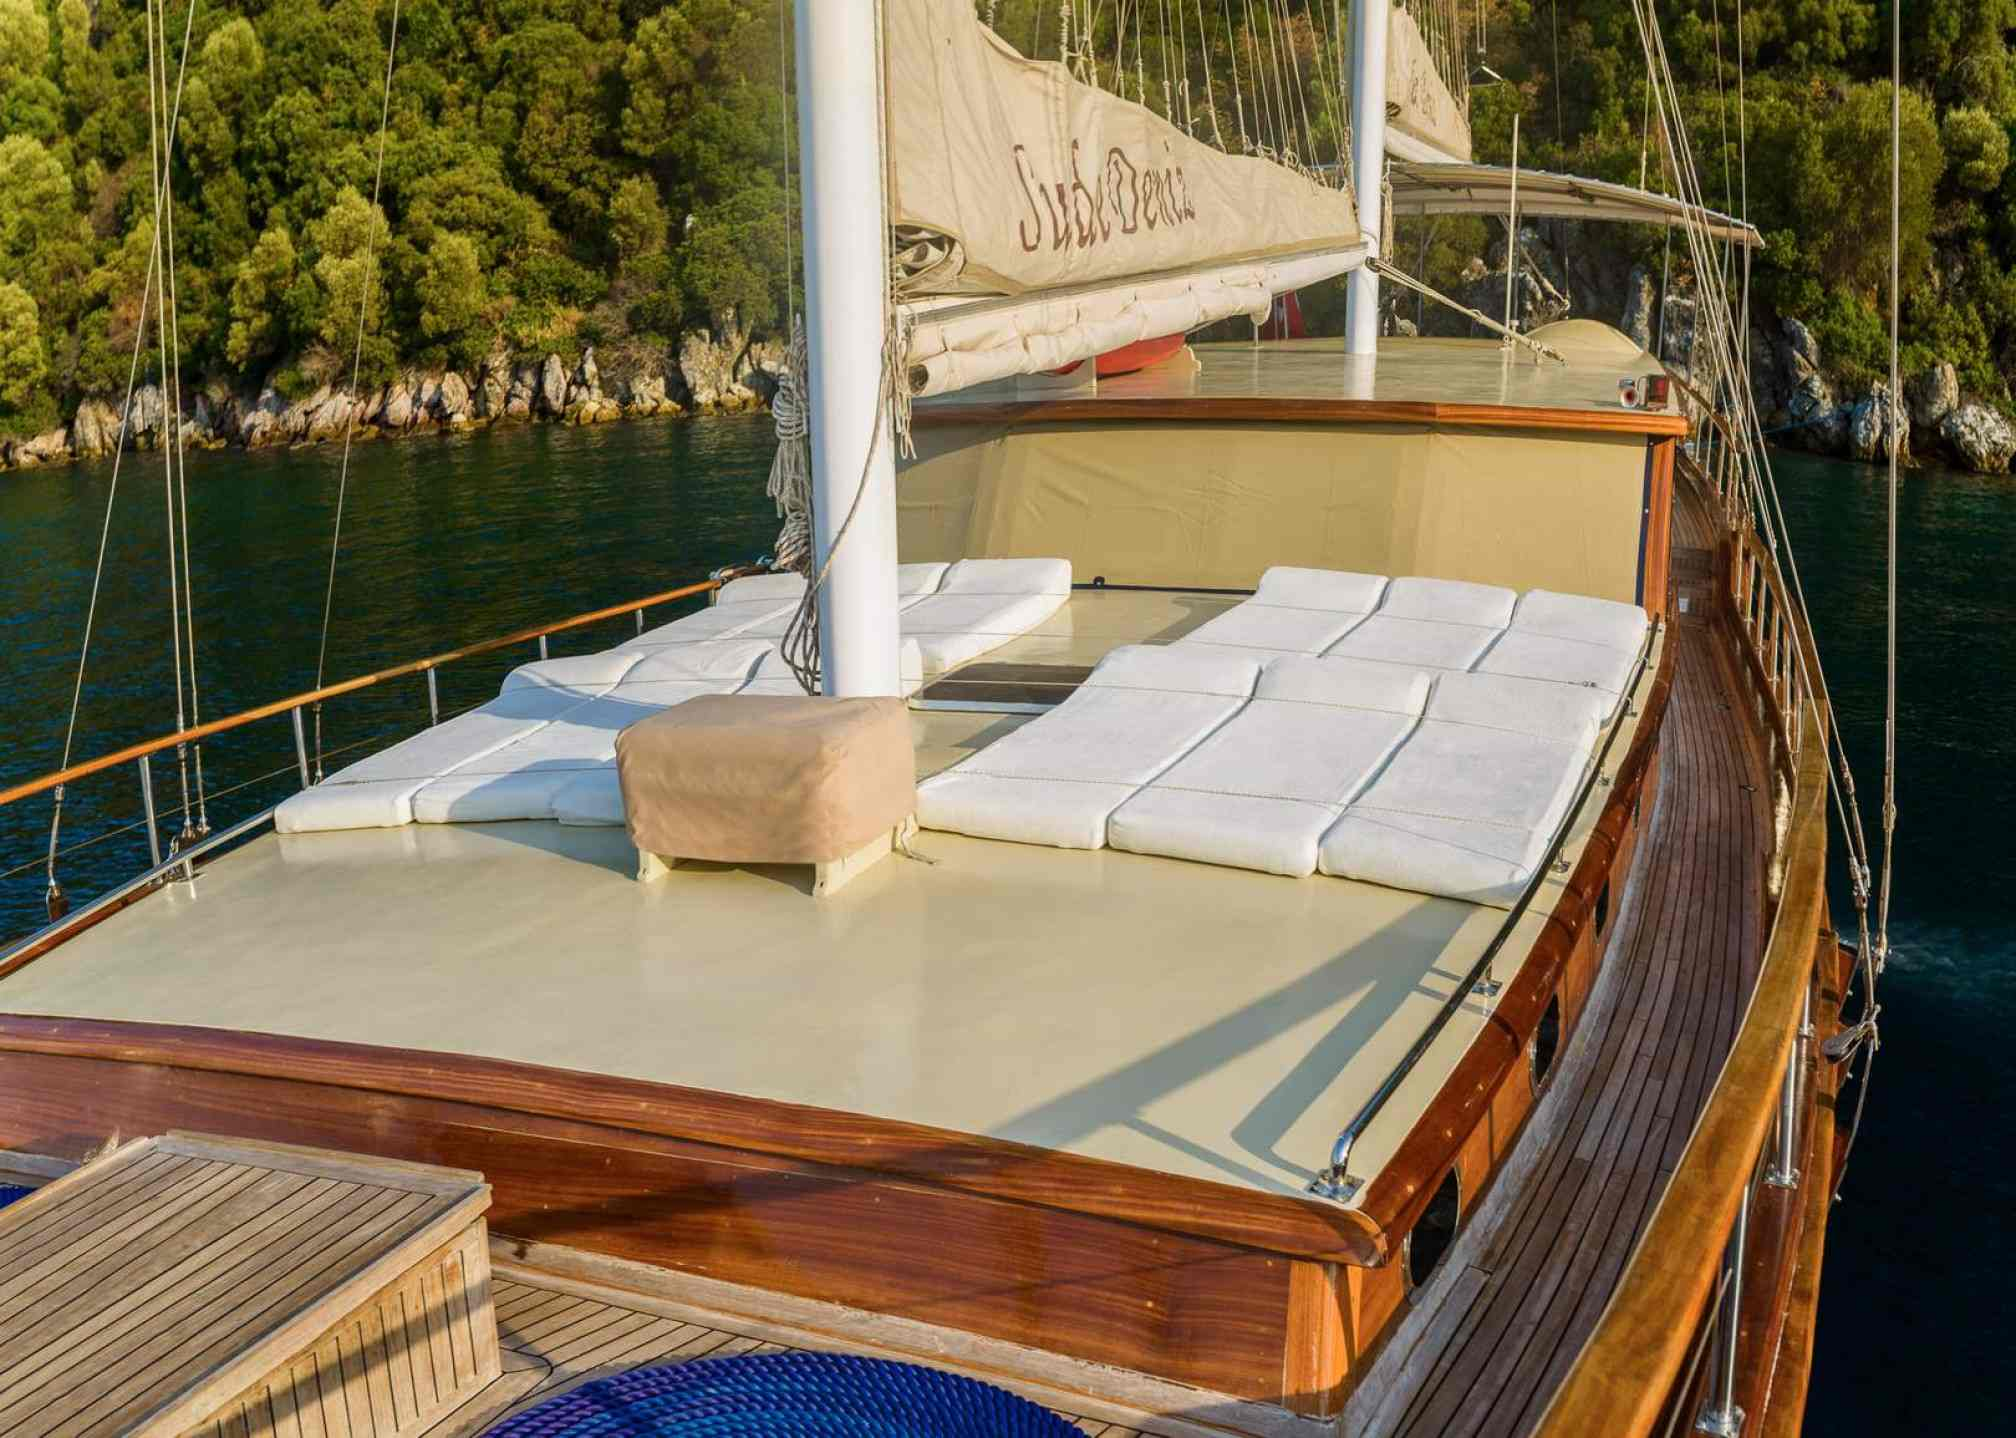 Sude Deniz gulet charter outdoors